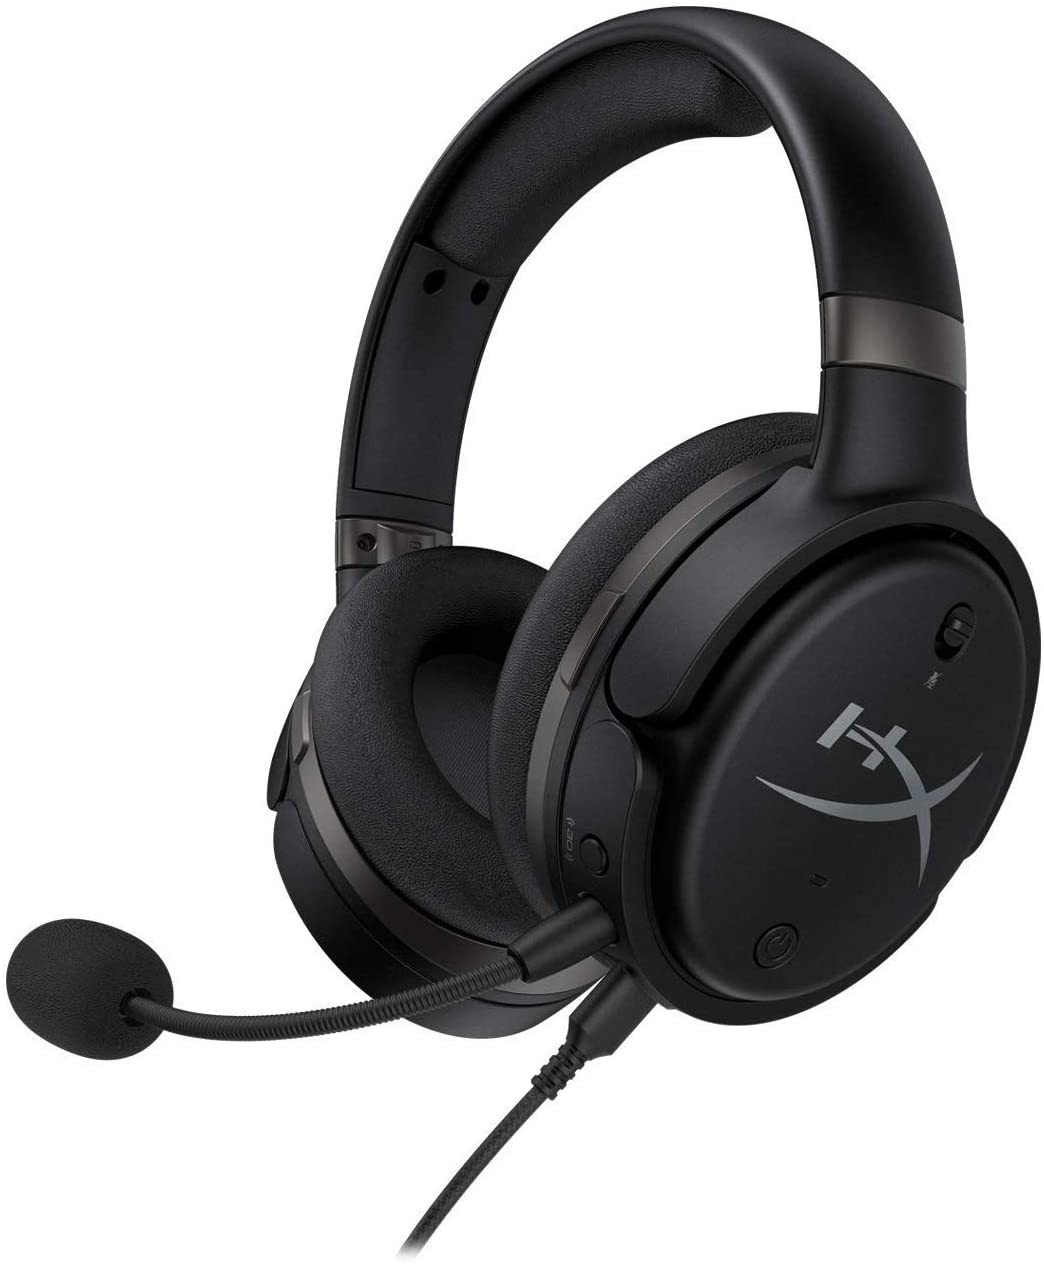 HyperX Cloud Orbit S-Gaming Headset, Head Tracking, Compatible with PC, Xbox One, PS4, Mac, Mobile, Nintendo Switch, Planar Magnetic headphones (HX-HSCOS-GM/WW) (Renewed)